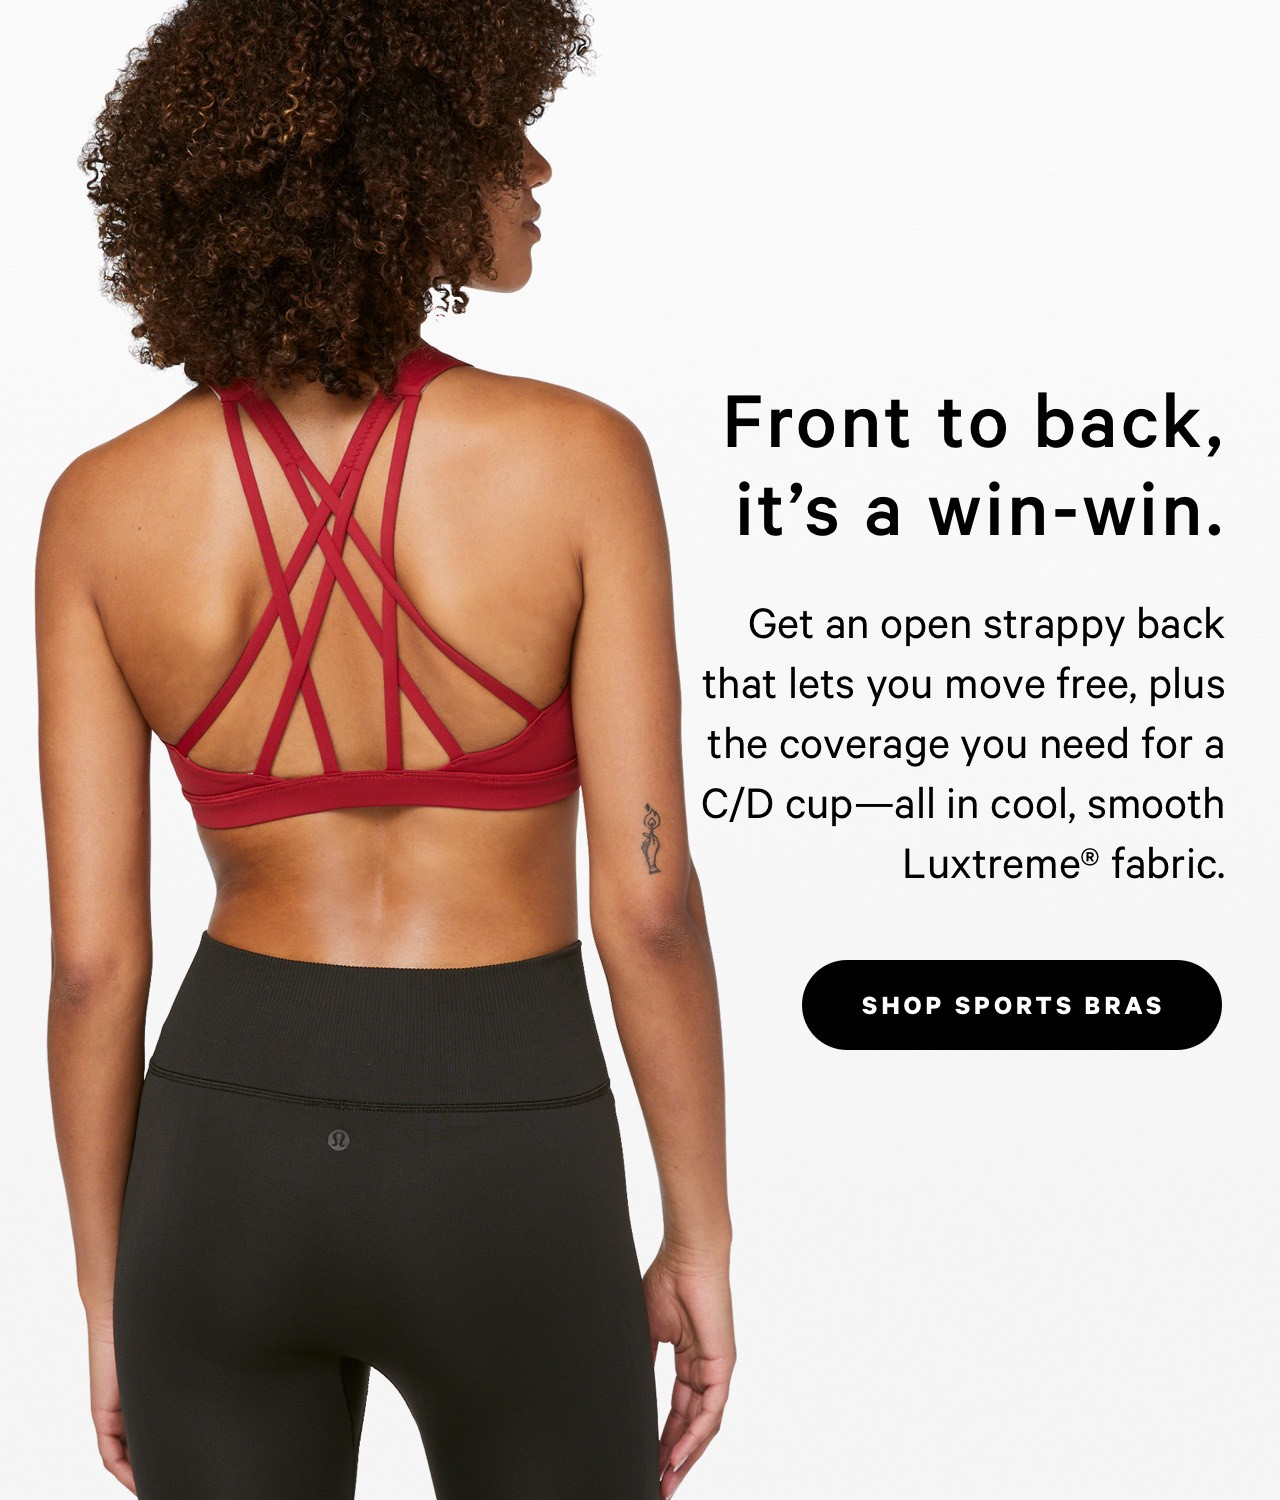 Front to back, it's a win-win. SHOP SPORTS BRAS